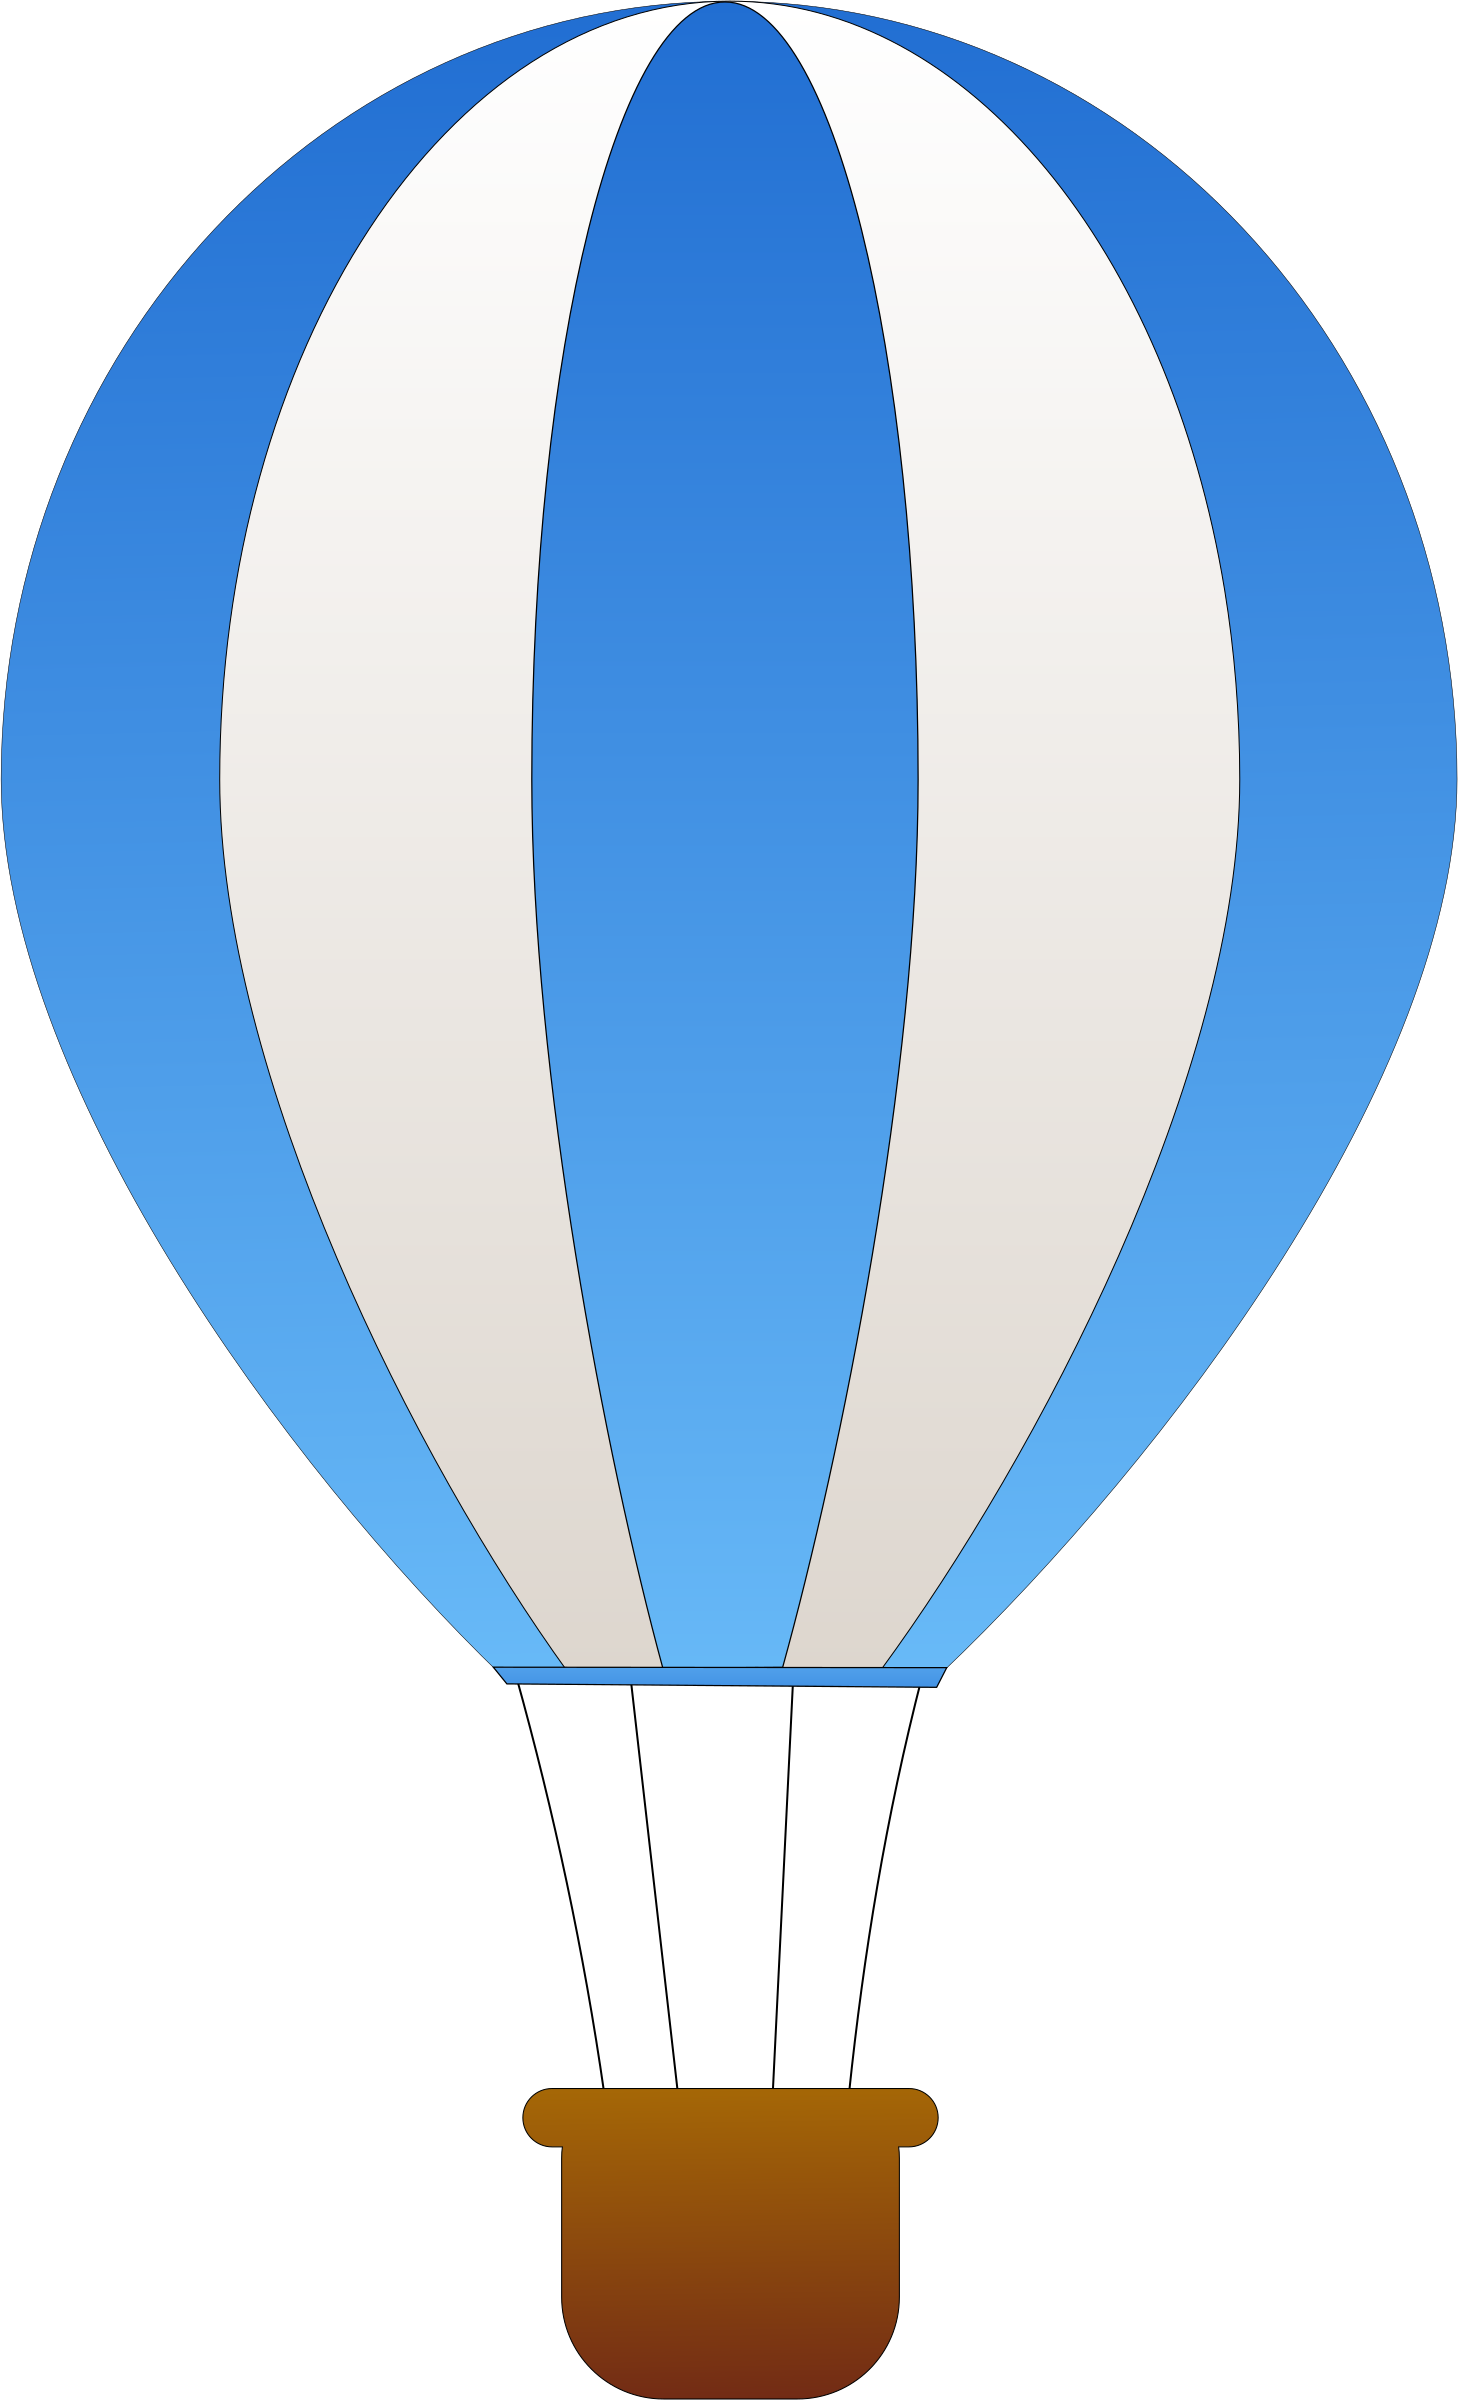 Hot Air Balloon Drawing | Free download on ClipArtMag